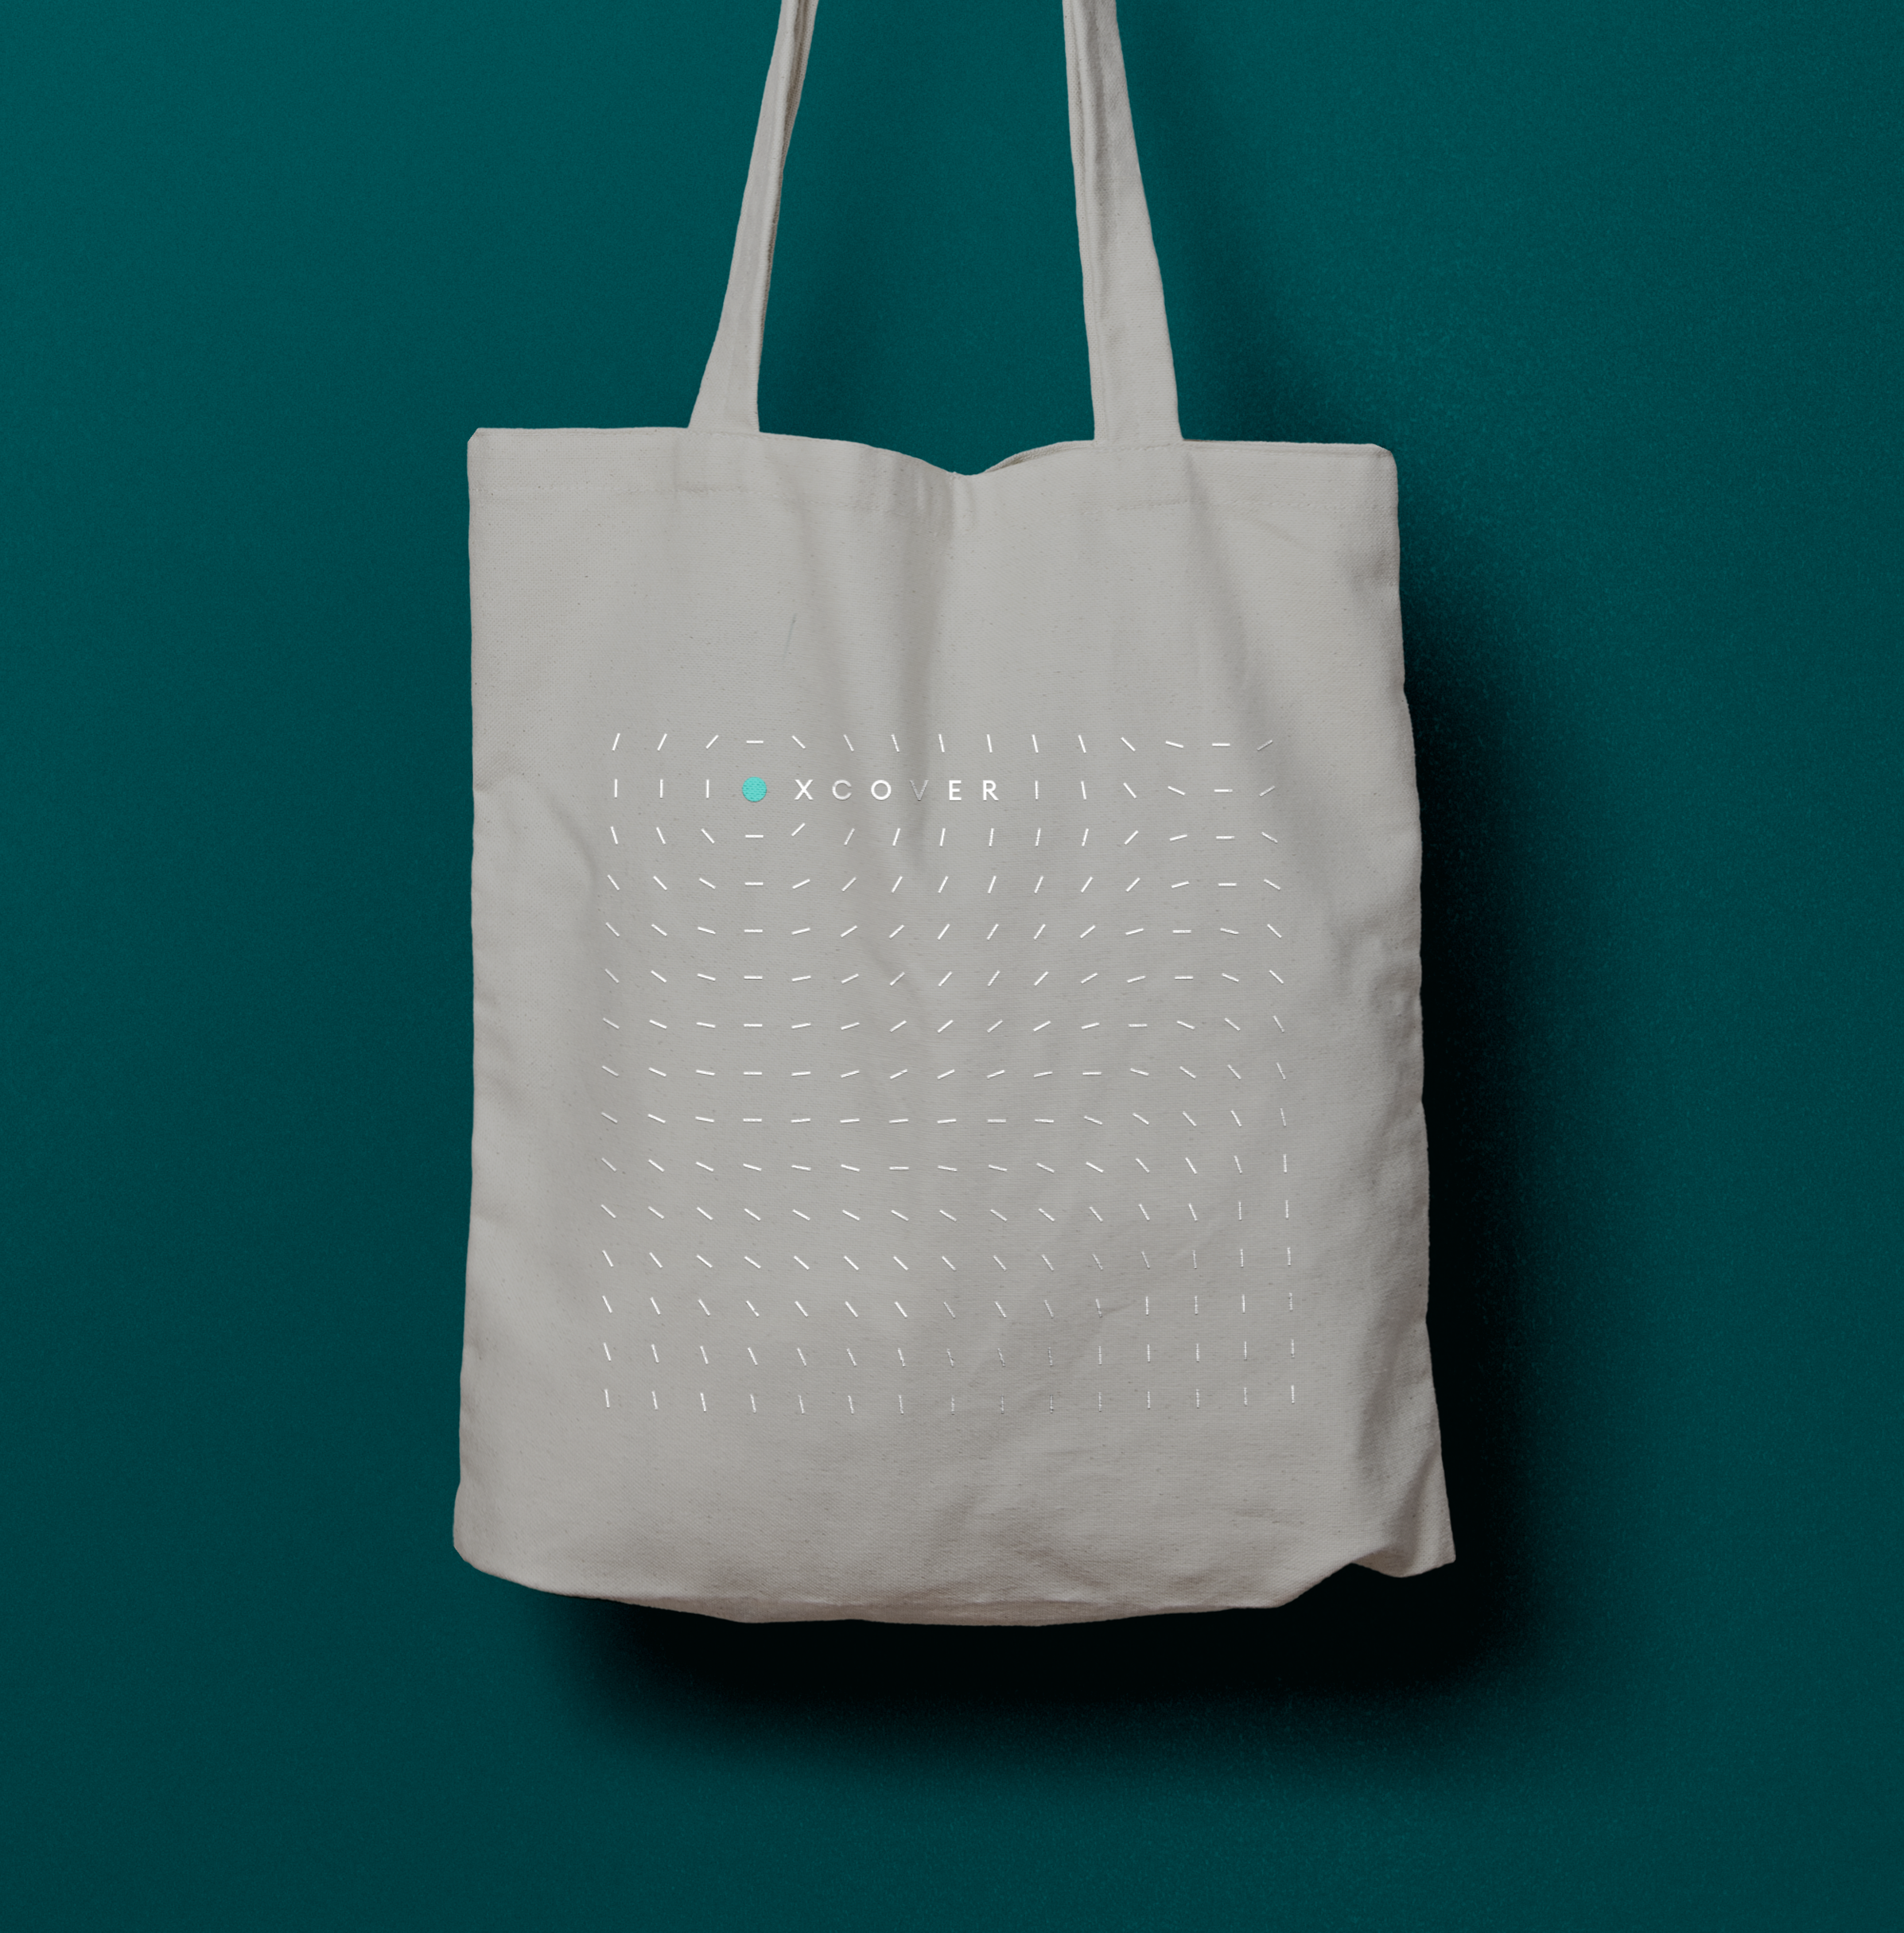 XCover_Canvas-Tote-Bag_r3